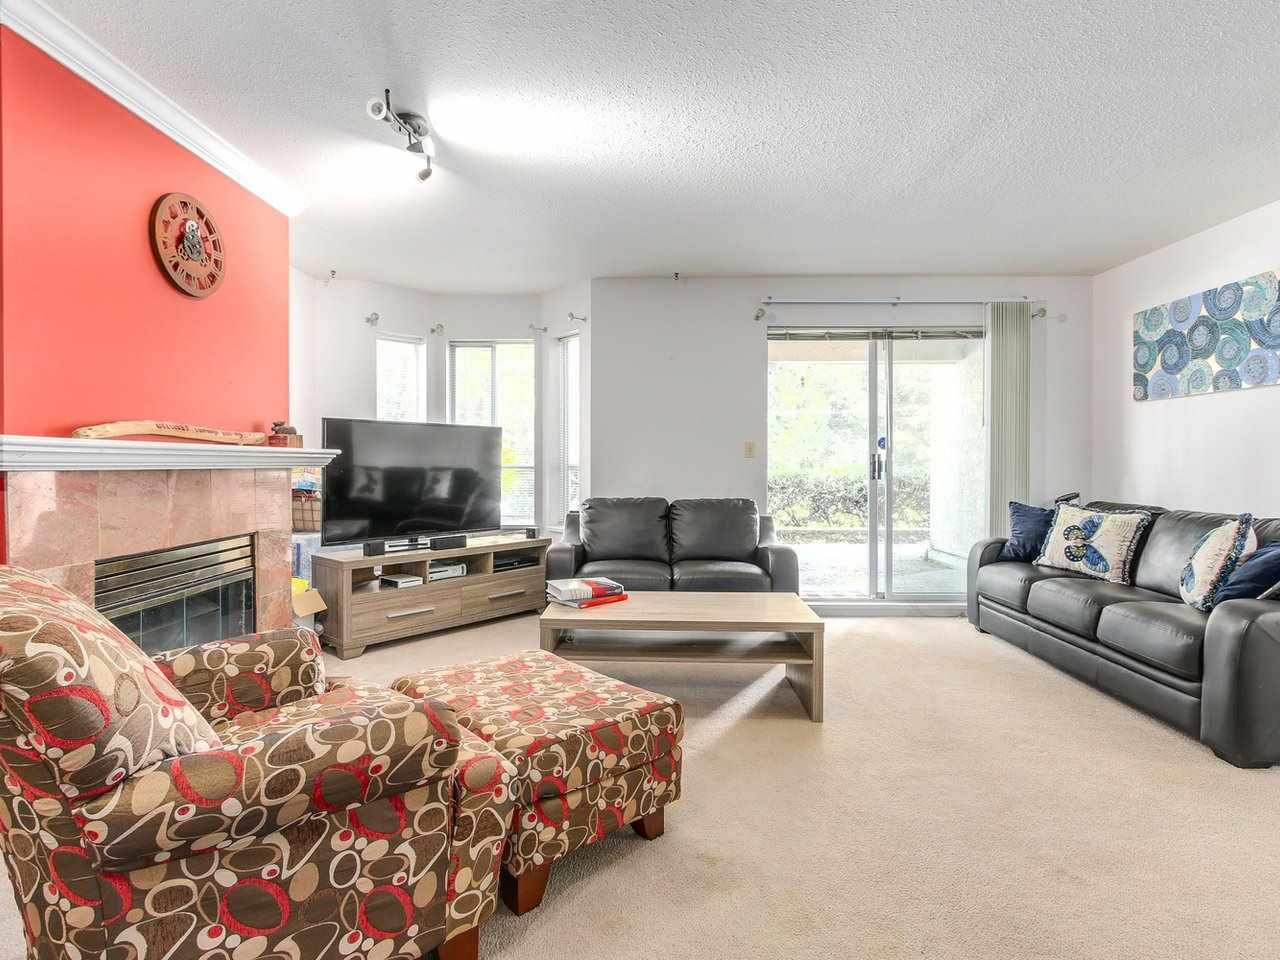 Photo 2: 105 1175 HEFFLEY Crescent in Coquitlam: North Coquitlam Condo for sale : MLS(r) # R2185533